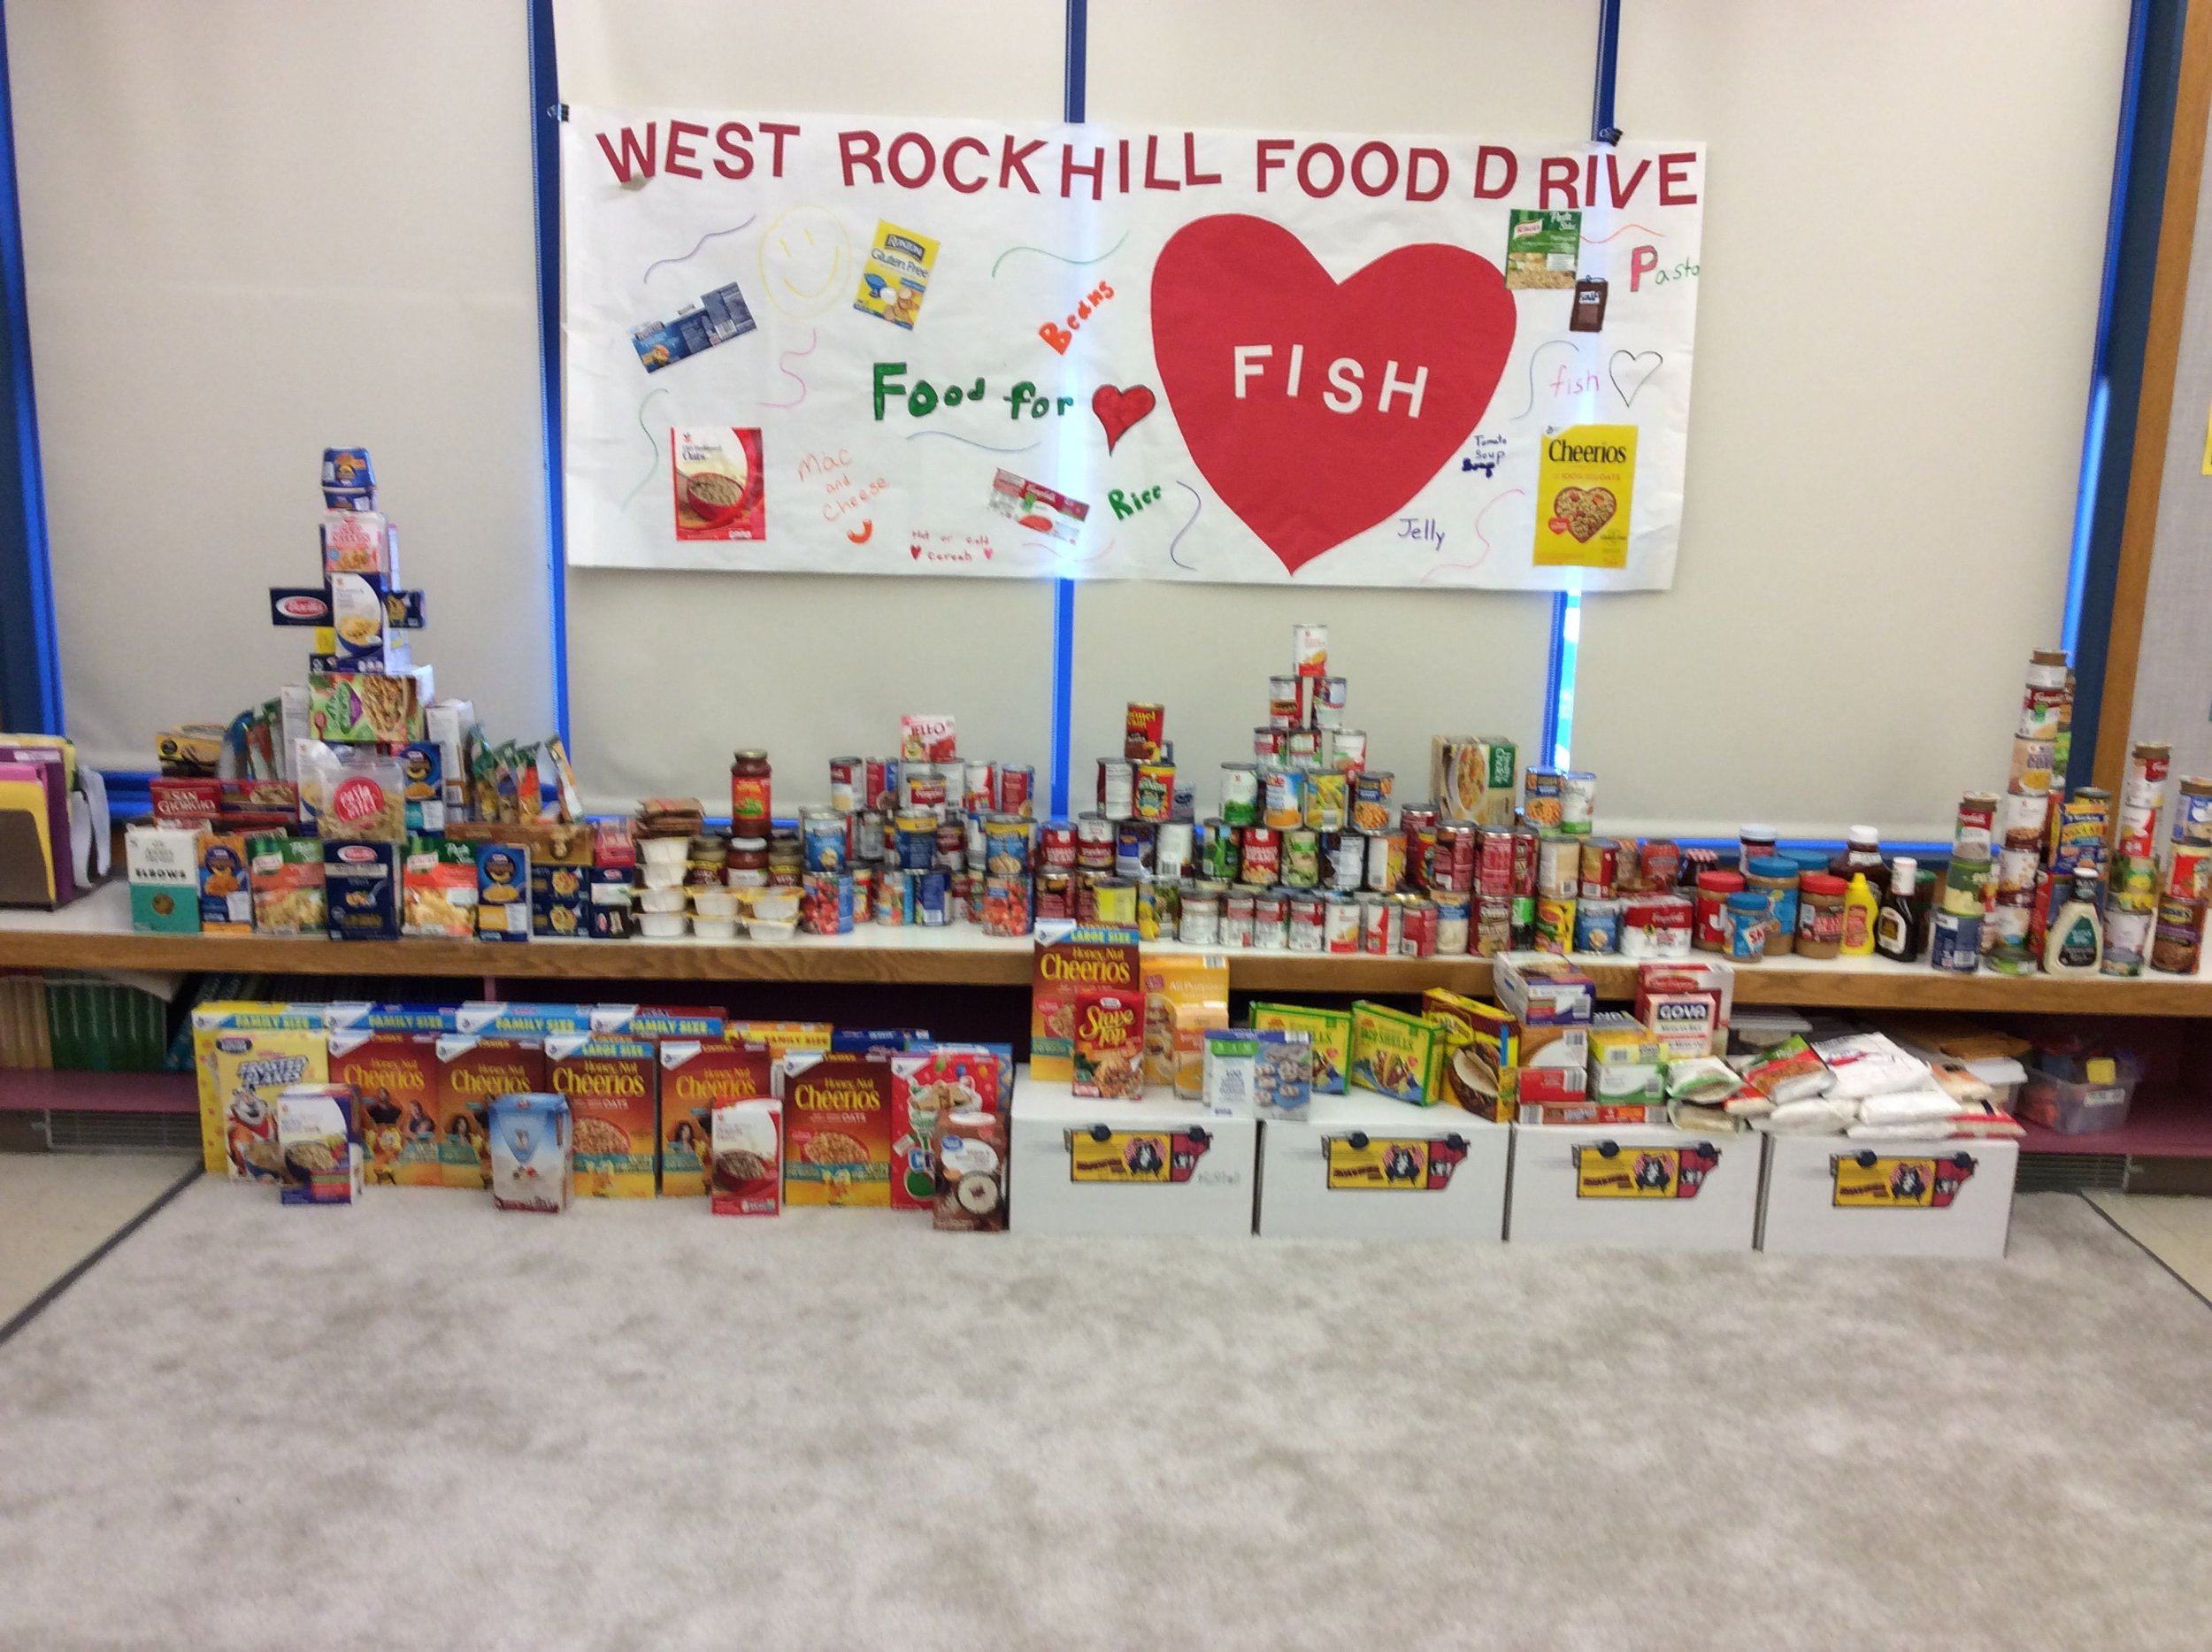 As part of a student council sponsored event, the students at West Rockhill Elementary School in Bucks County, Pennsylvania collected food for a local food pantry known as F.I.S.H. Their efforts will help feed struggling families in their local community. Thank you Jane Krot for letting us know about the wonderful kids of West Rockhill Elementary School. #WestRockhillMovesMountains!